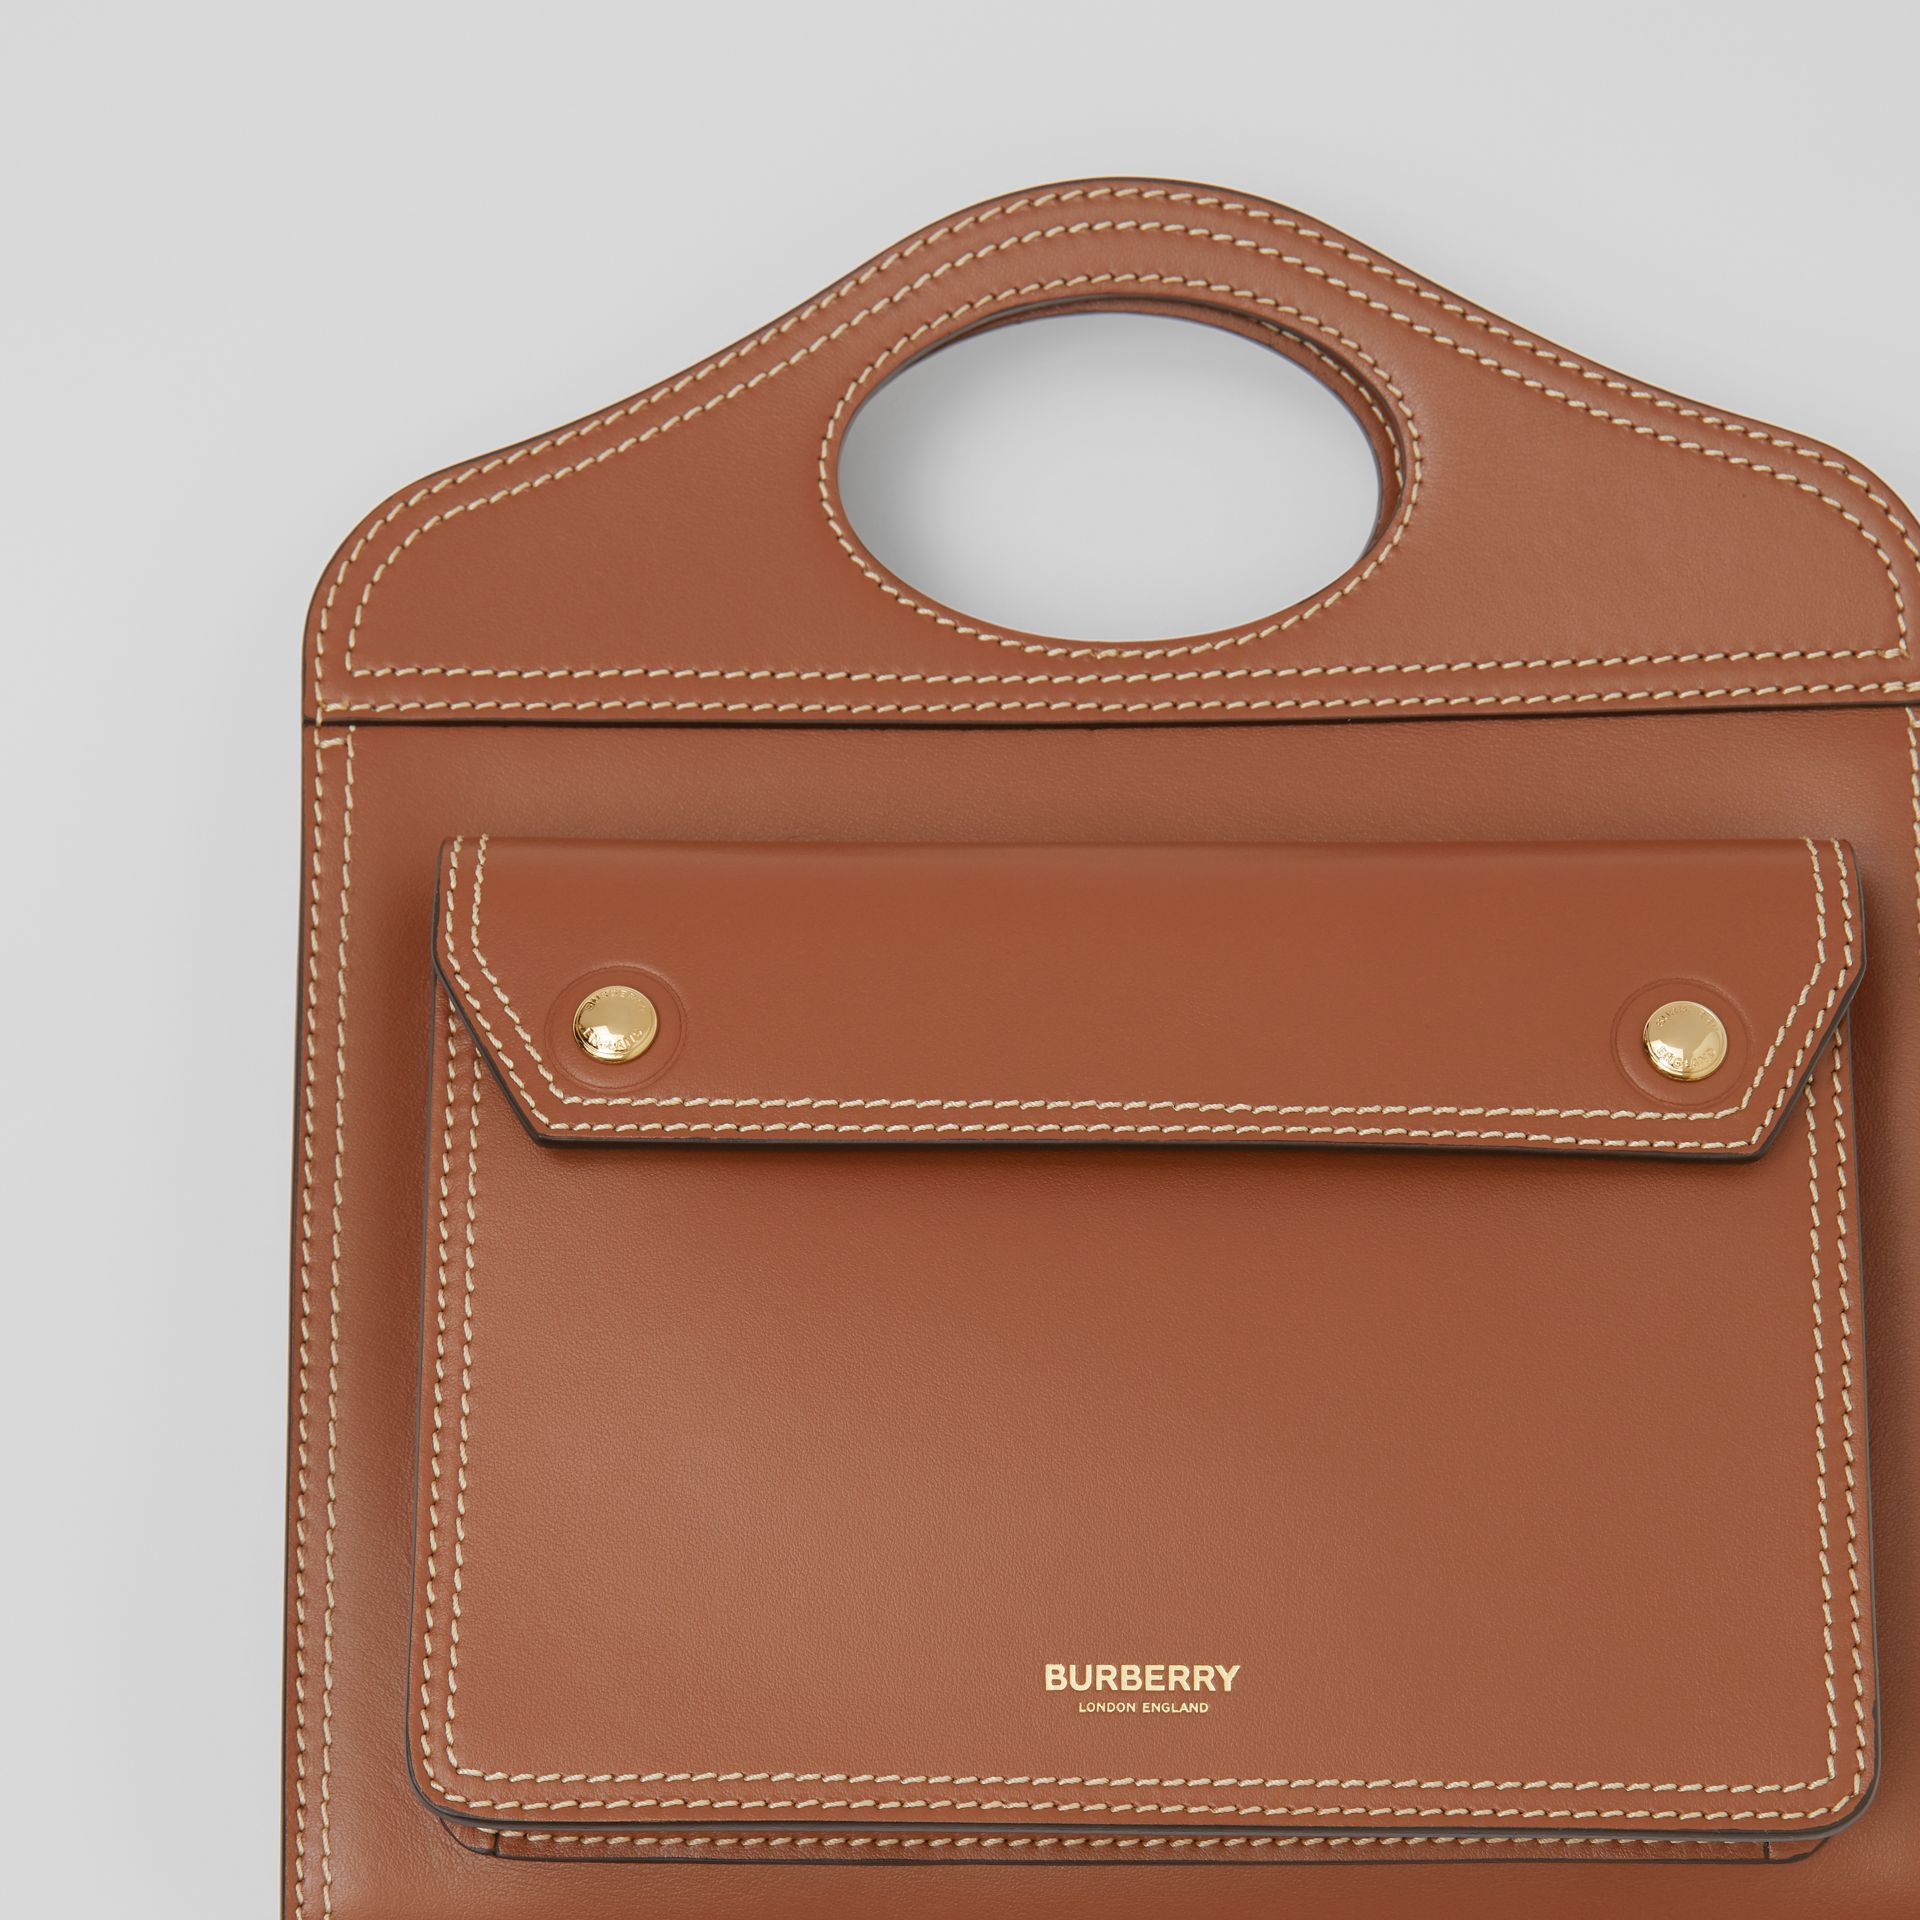 Mini Topstitch Detail Leather Pocket Bag in Malt Brown - Women | Burberry - gallery image 1